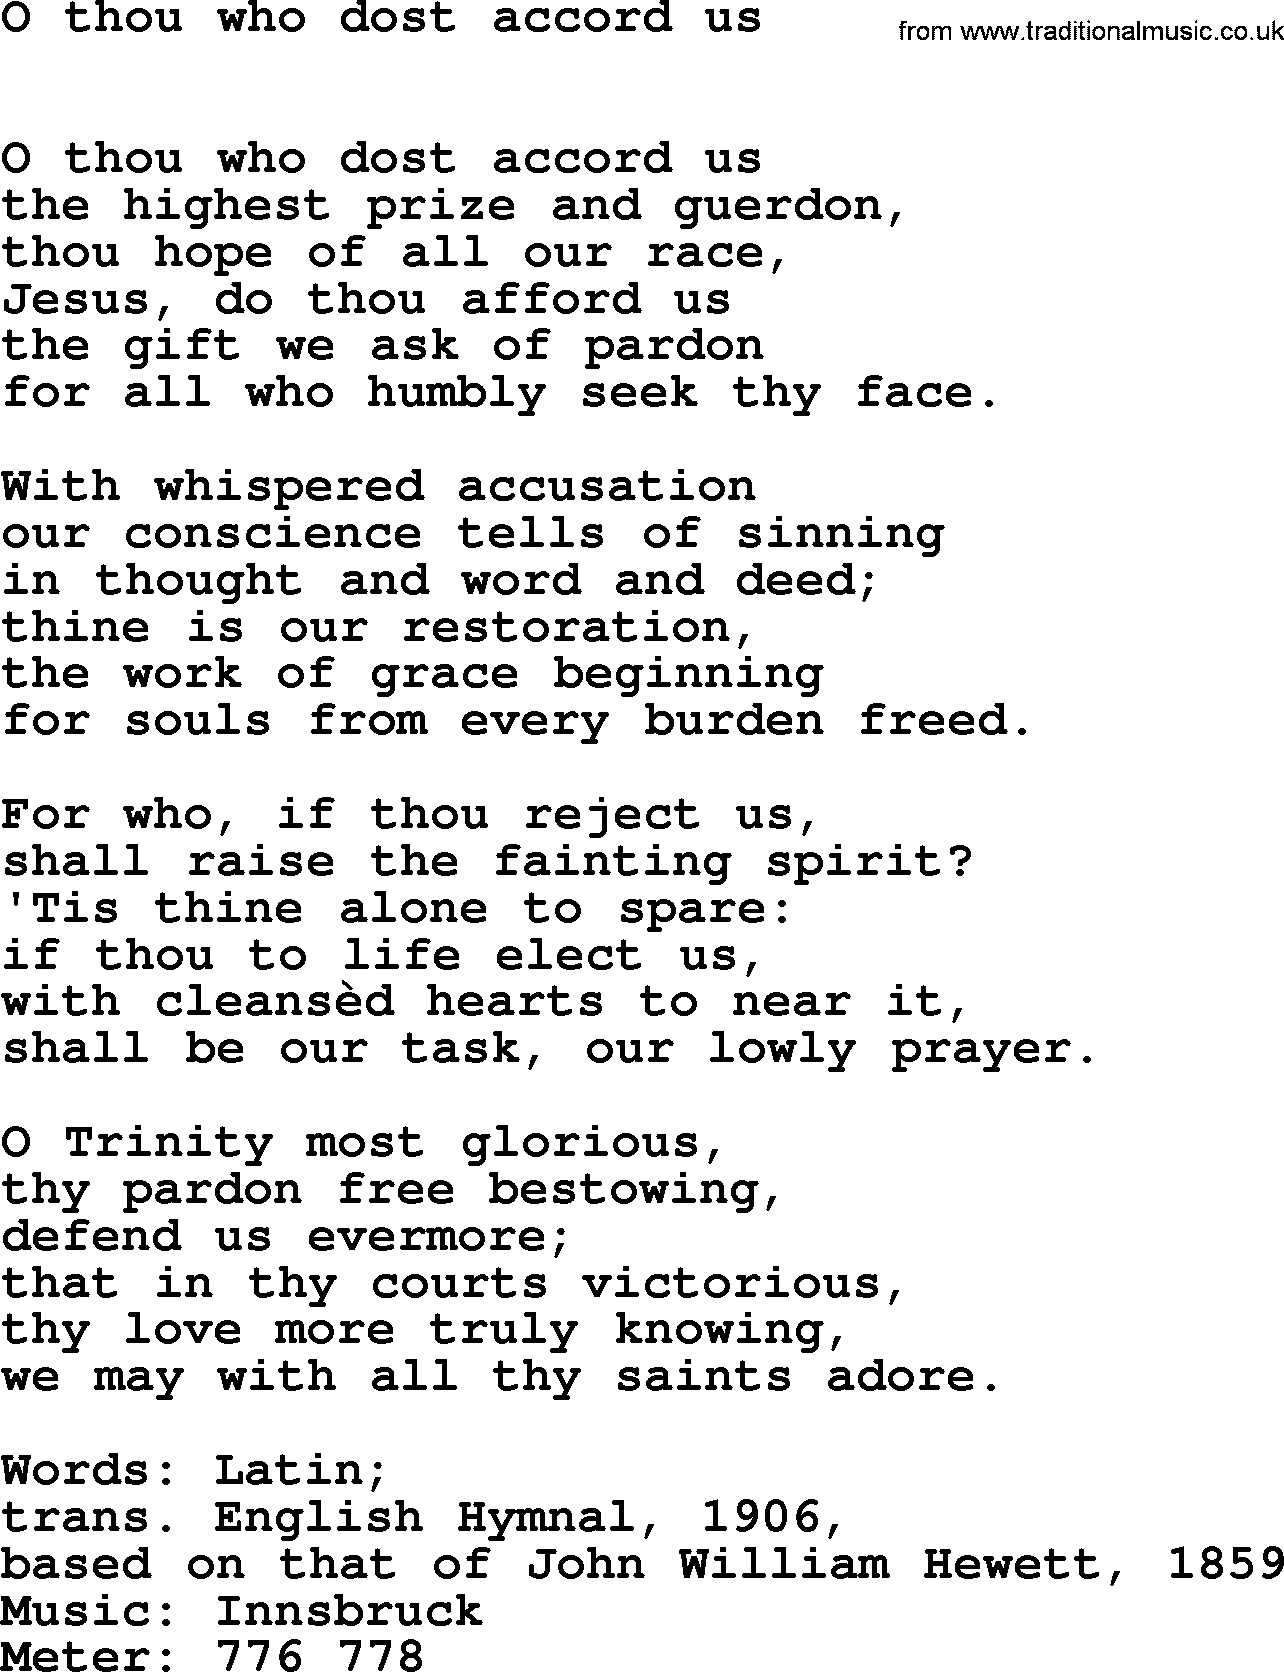 Lent Hymns, Song: O Thou Who Dost Accord Us - lyrics, midi ...